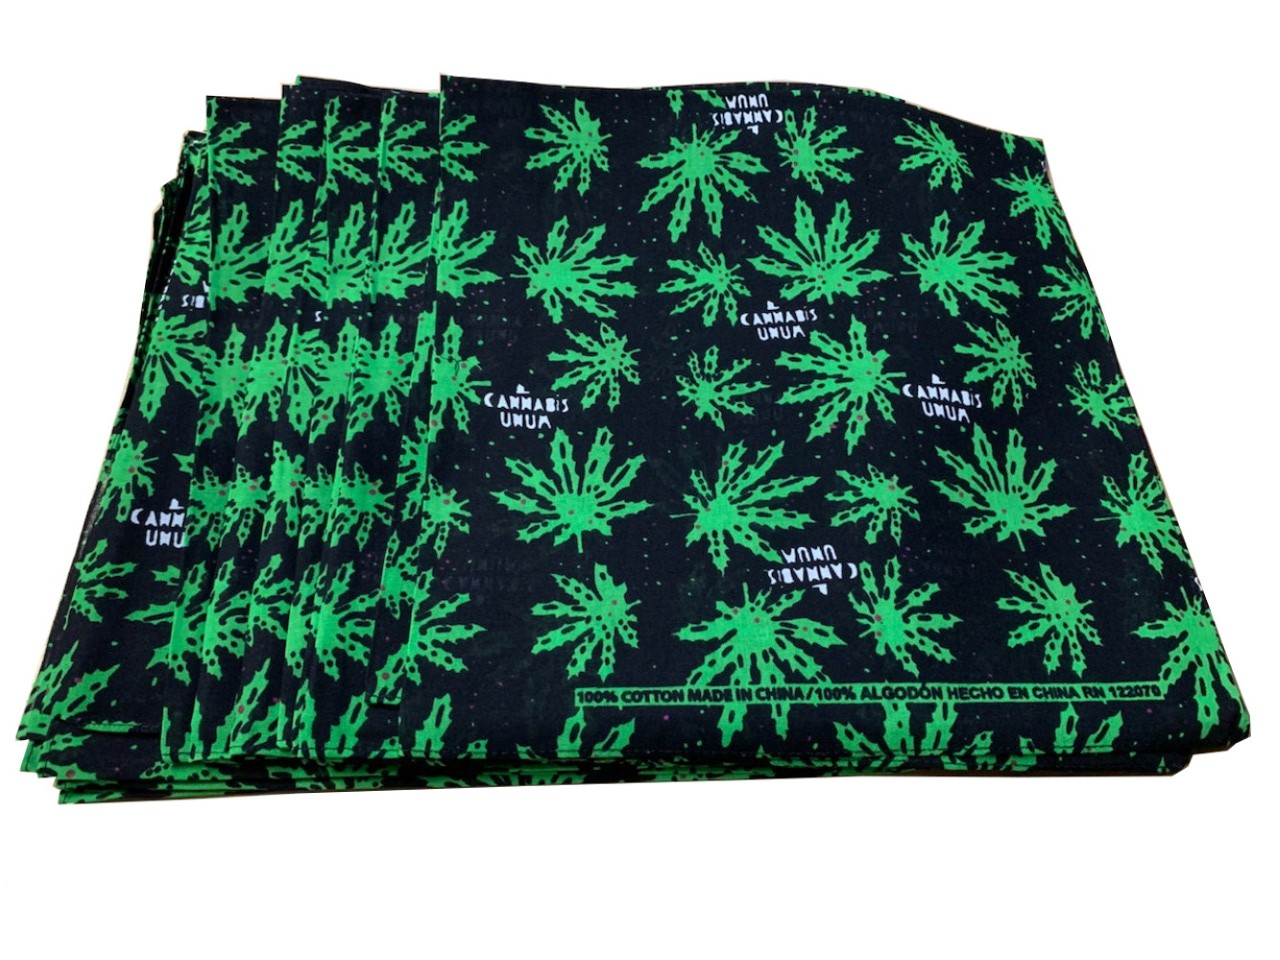 "Cannabis Marijuana Bandanas 12 Pack 22"" x 22"" - 100% Cotton"